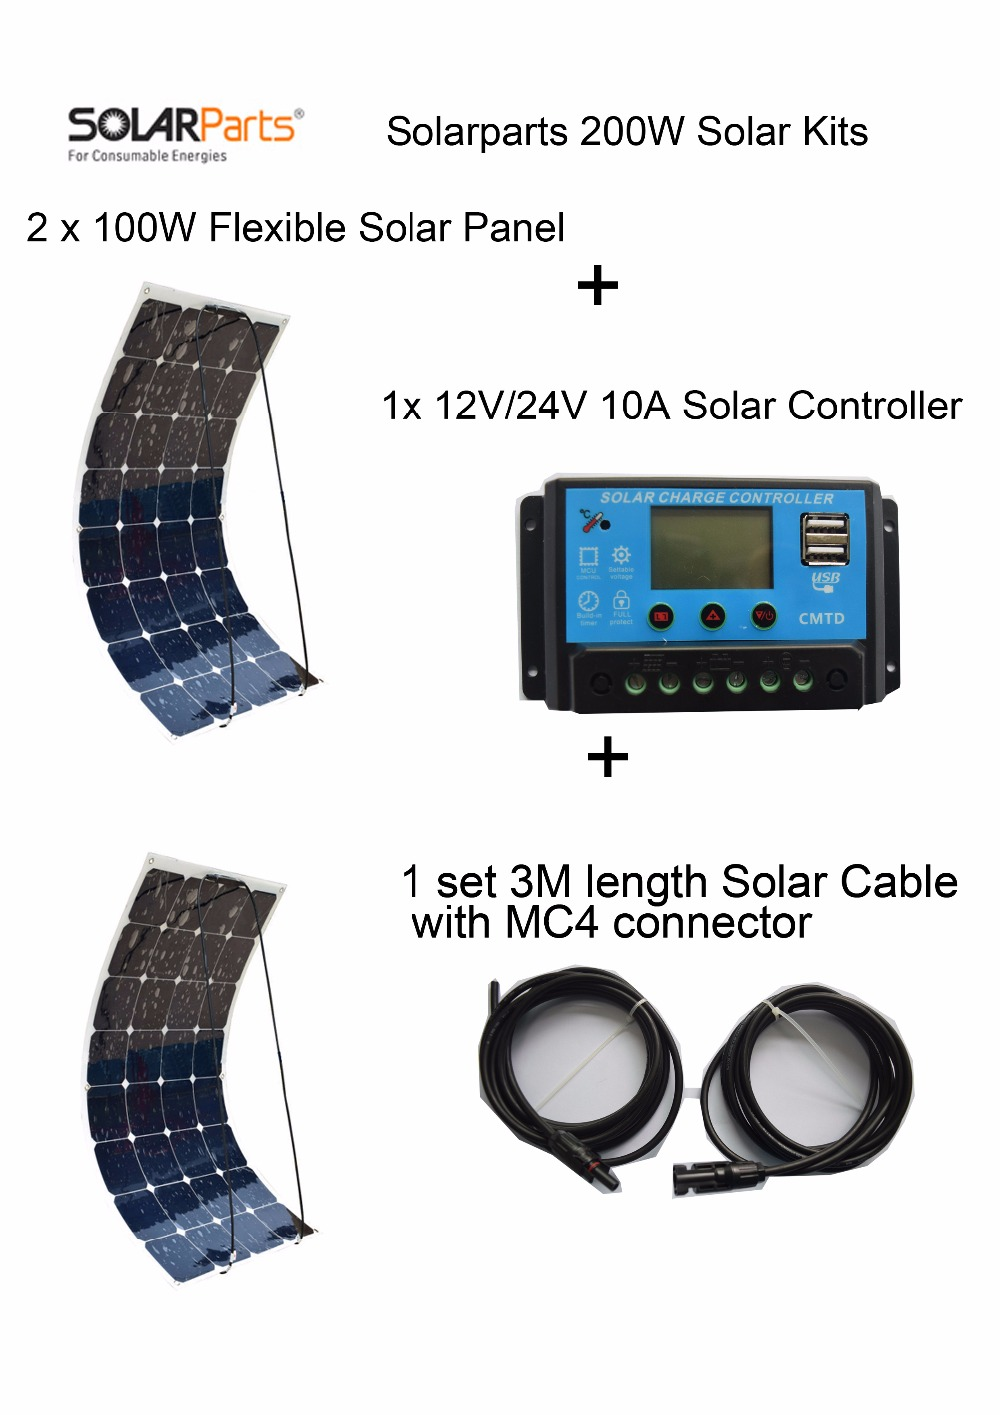 Solarparts Standard Kits 200W DIY RV/Boat Kits Solar System 100W flexible solar panel+controller+cable outdoor light led module. solarparts 100w diy rv marine kits solar system1x100w flexible solar panel 12v 1 x10a 12v 24v solar controller set cables cheap